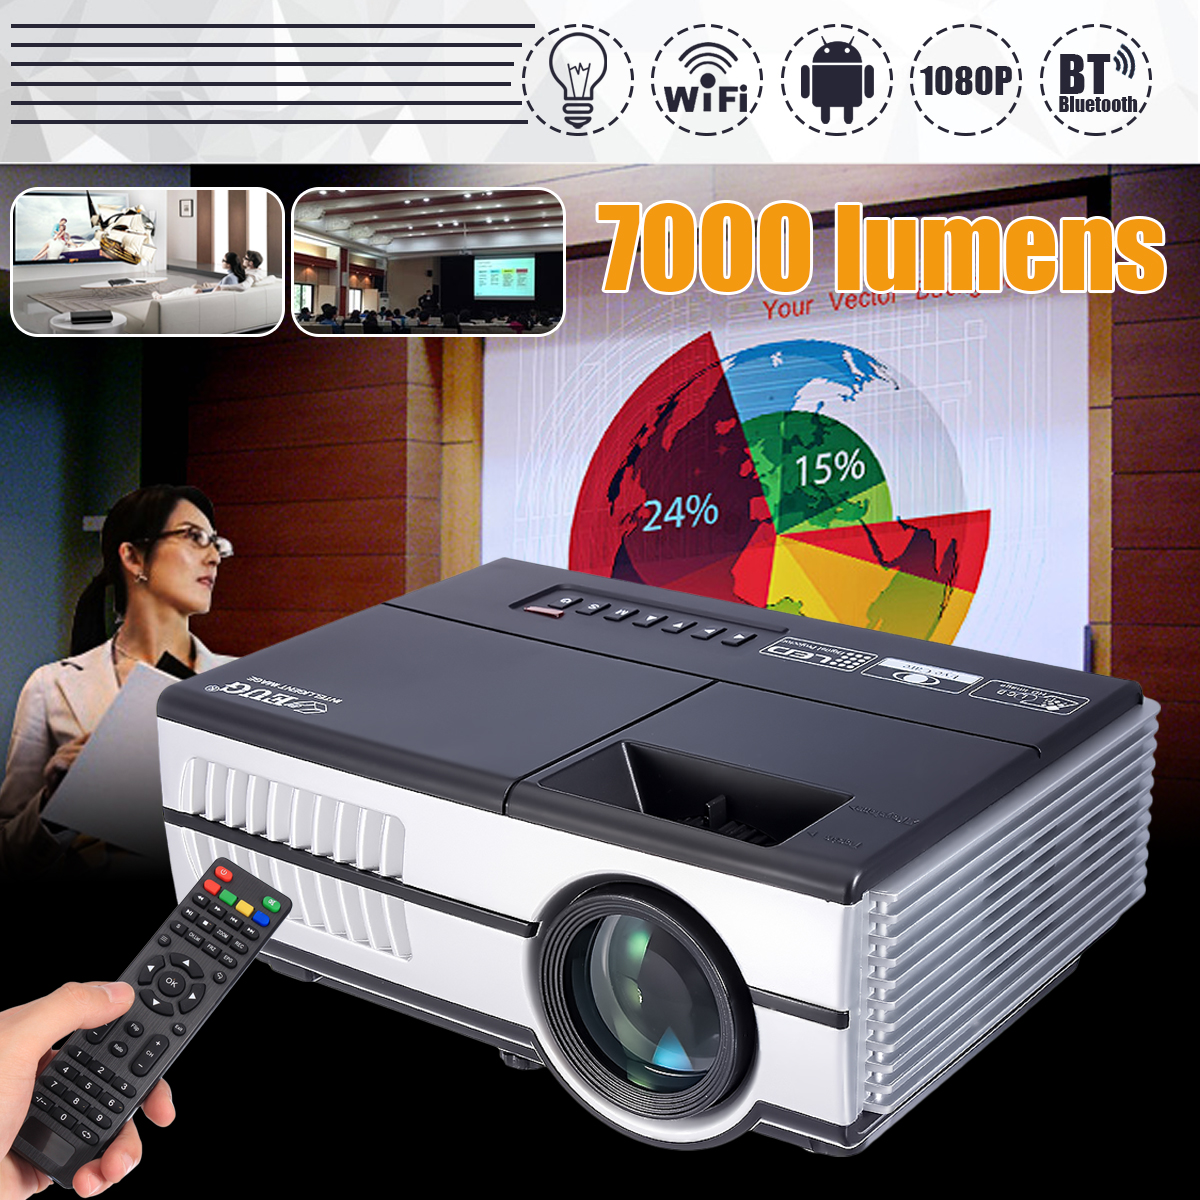 Max 7000Lumens 1080P Full HD LED Projector 3D Home Theater Cinema LCD Wireless HDMI AV/VGA/USB/SD/HDMI/TV Multimedia Beamer яйцеварка электрическая zdq 501